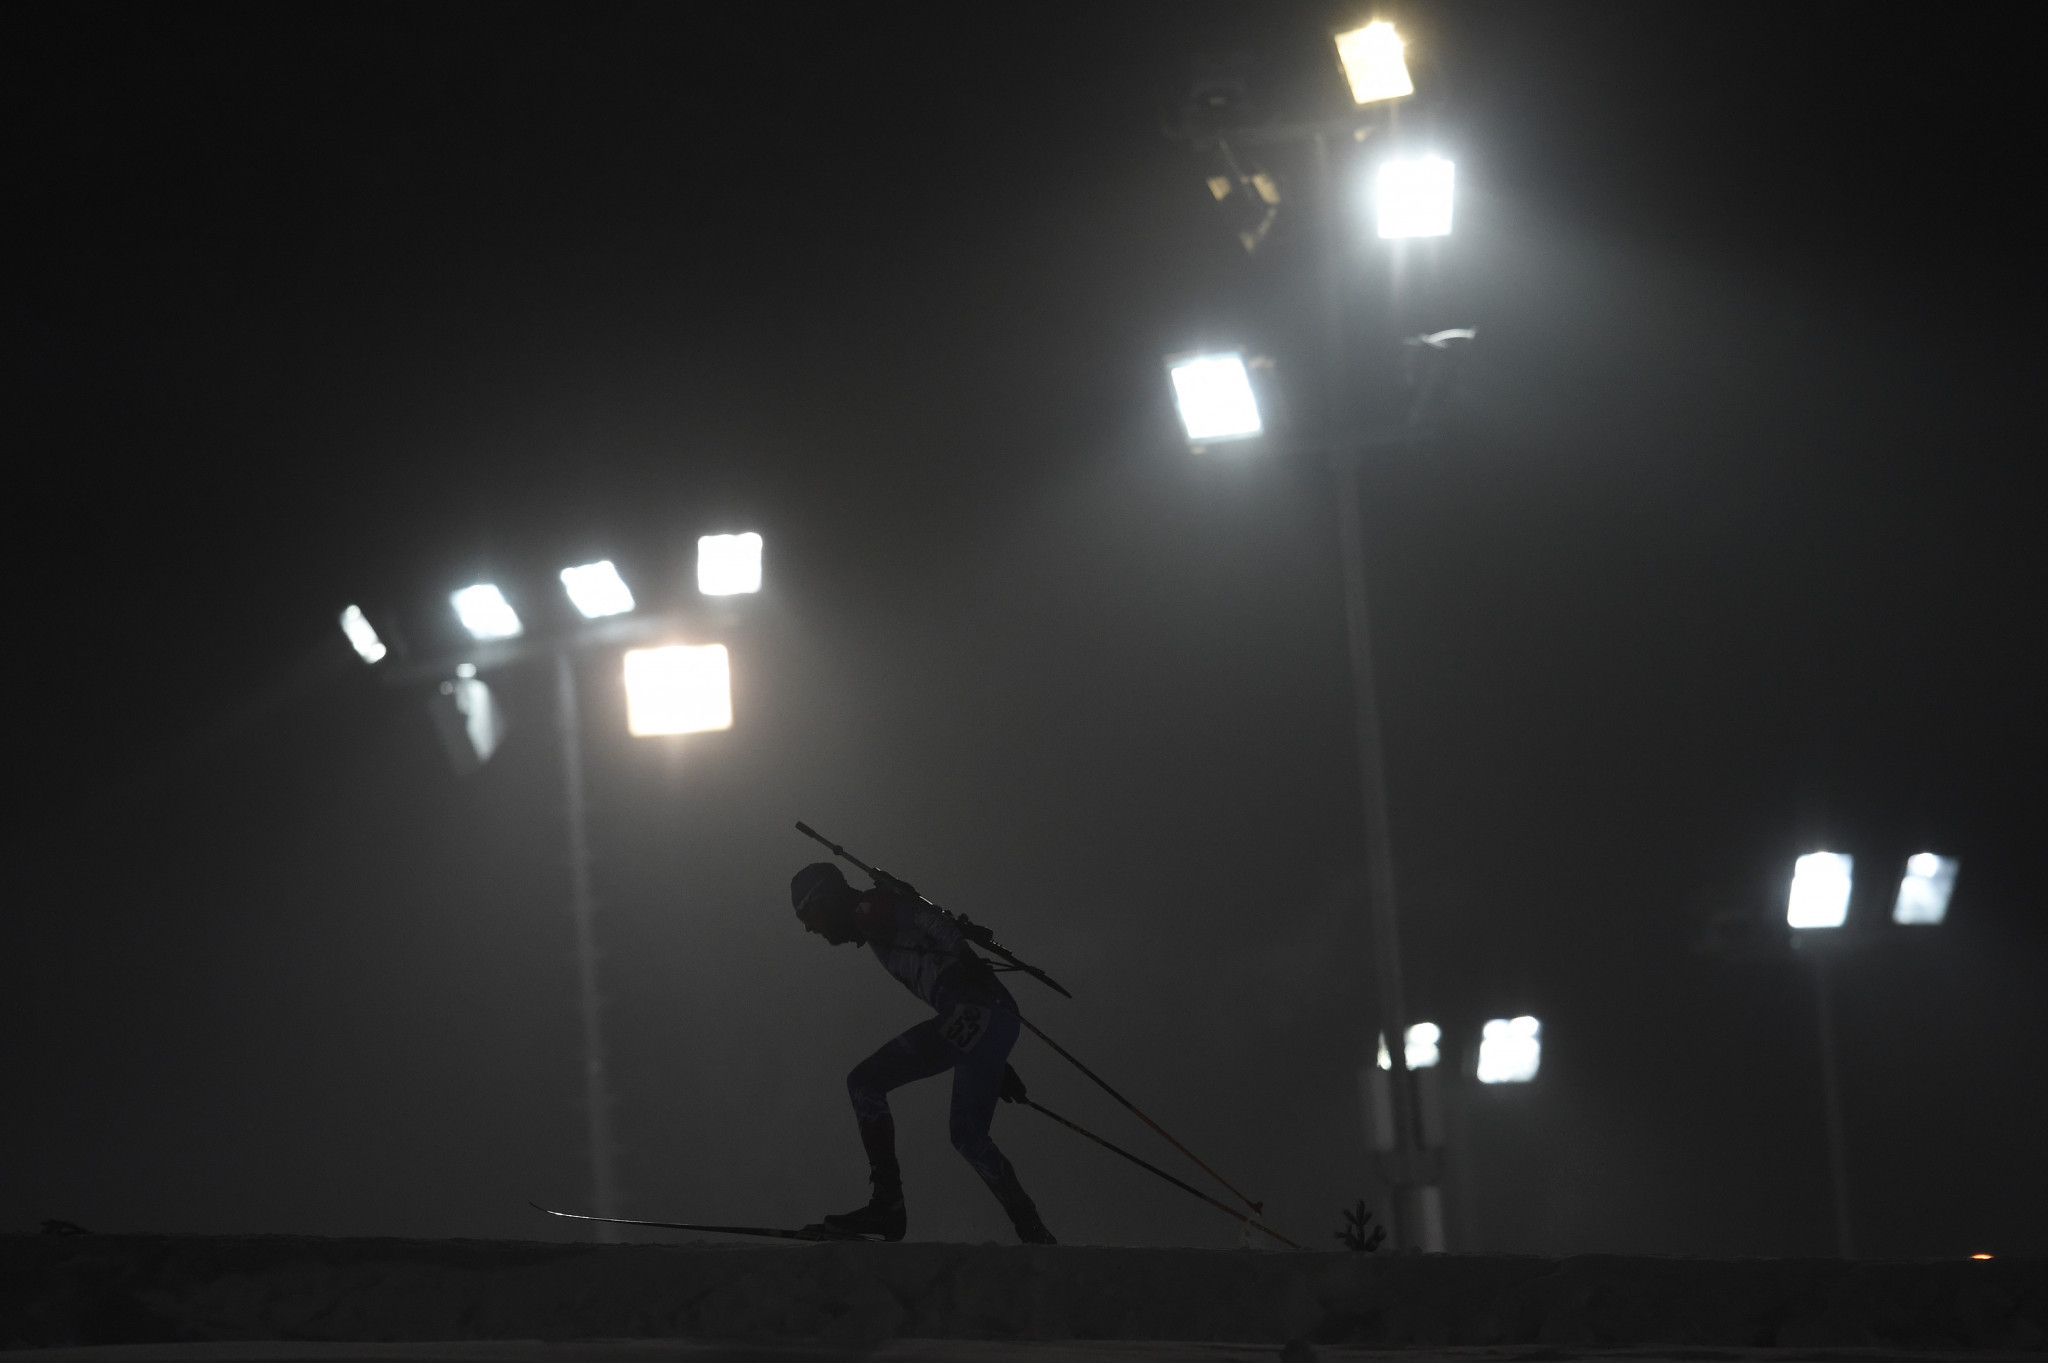 The floodlight competition saw an impressive accuracy in biathletes' shooting ©Getty Images